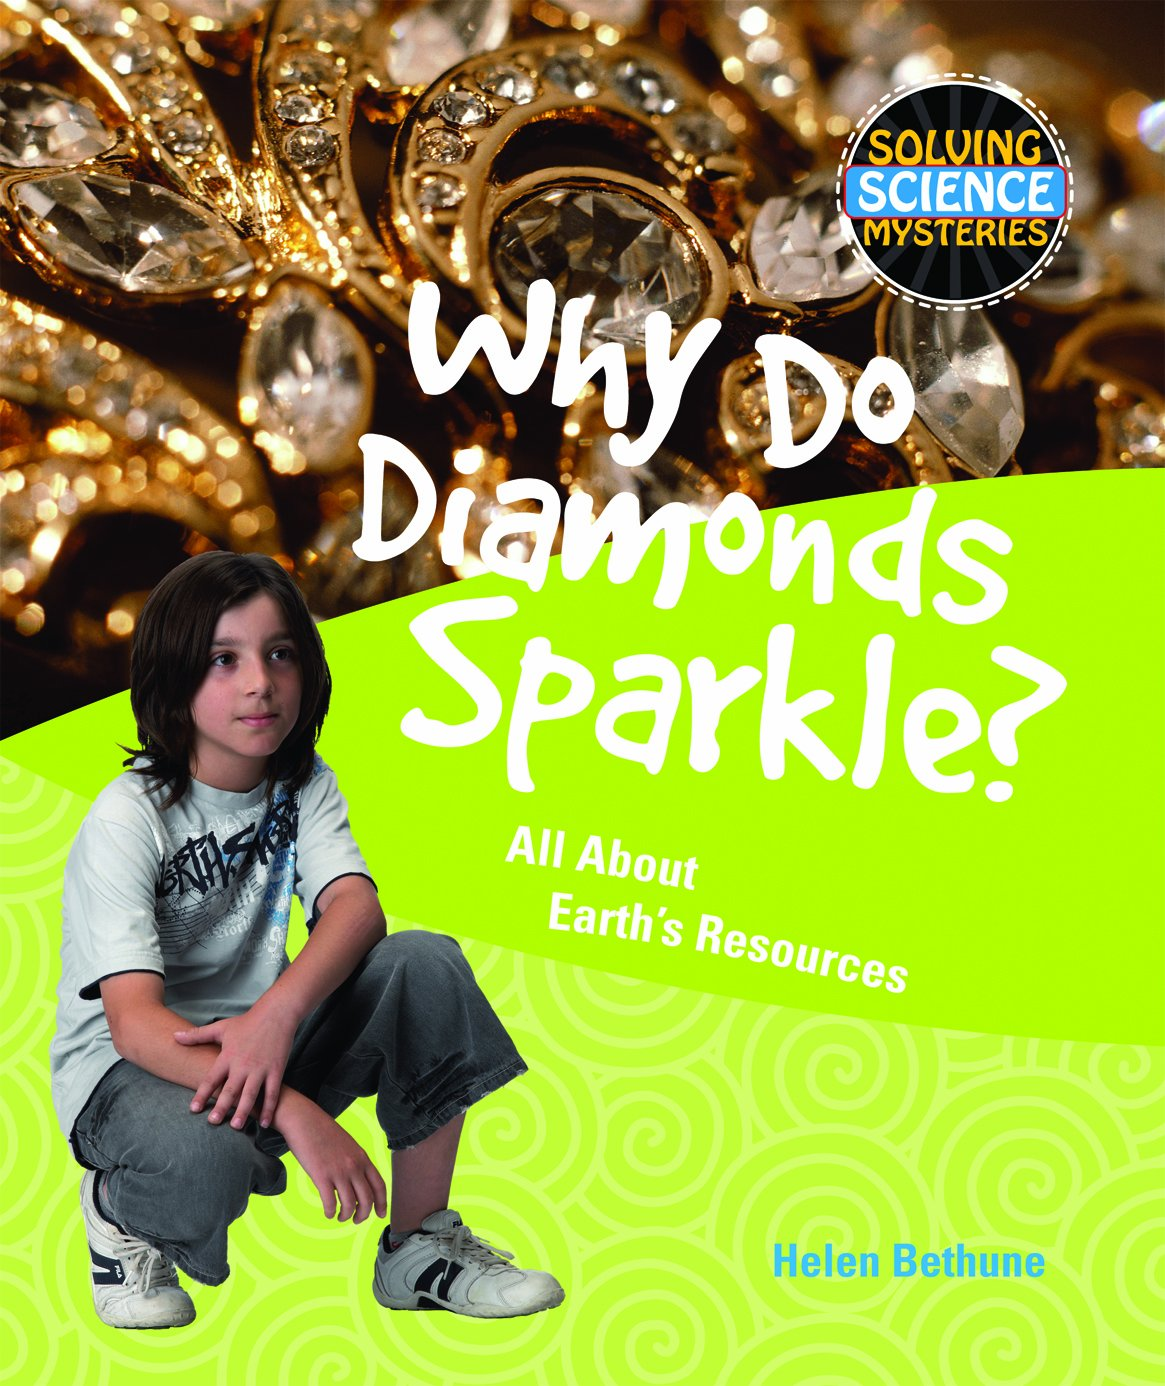 Download Why Do Diamonds Sparkle?: All About Earth's Resources (Solving Science Mysteries) pdf